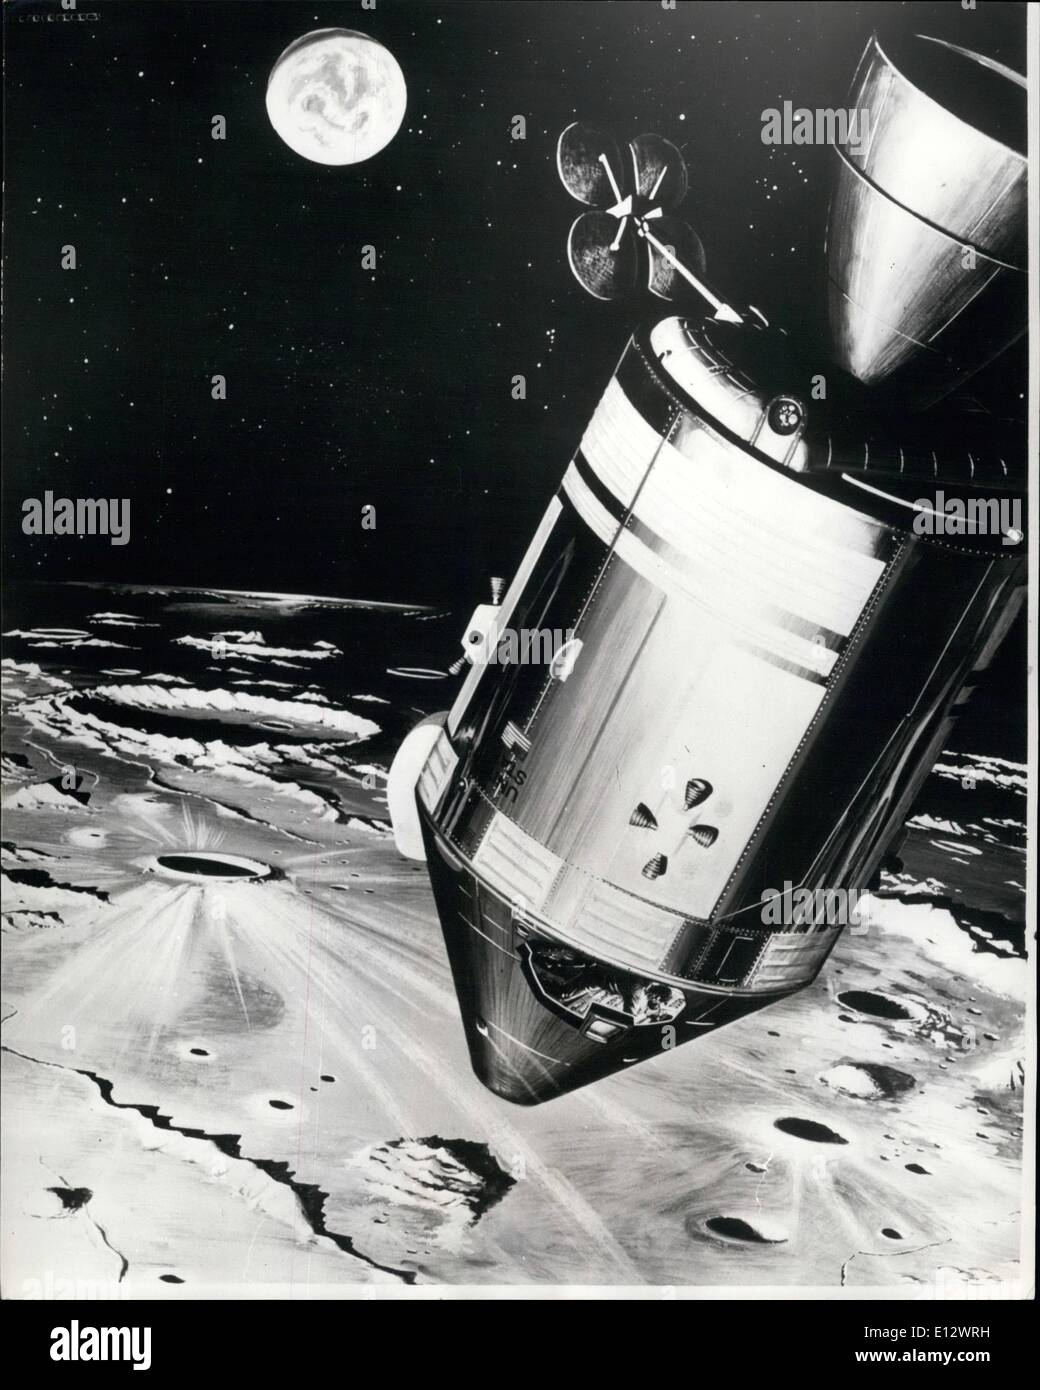 Feb. 26, 2012 - Apollo 8 Moon flight; Photo Shows An artist's concept shows the Apollo 8 spacecraft as it orbits the Moon. During the mission, A. Anders, Lunar module (LM) pilot, and James A. Lovell, Command Module (CM) Pilot -will photograph the Moon's surface and make landmark sightings and other observations. Space Center on December 21, and is due to go into orbit round the moon on Christmas Eve. - Stock Image